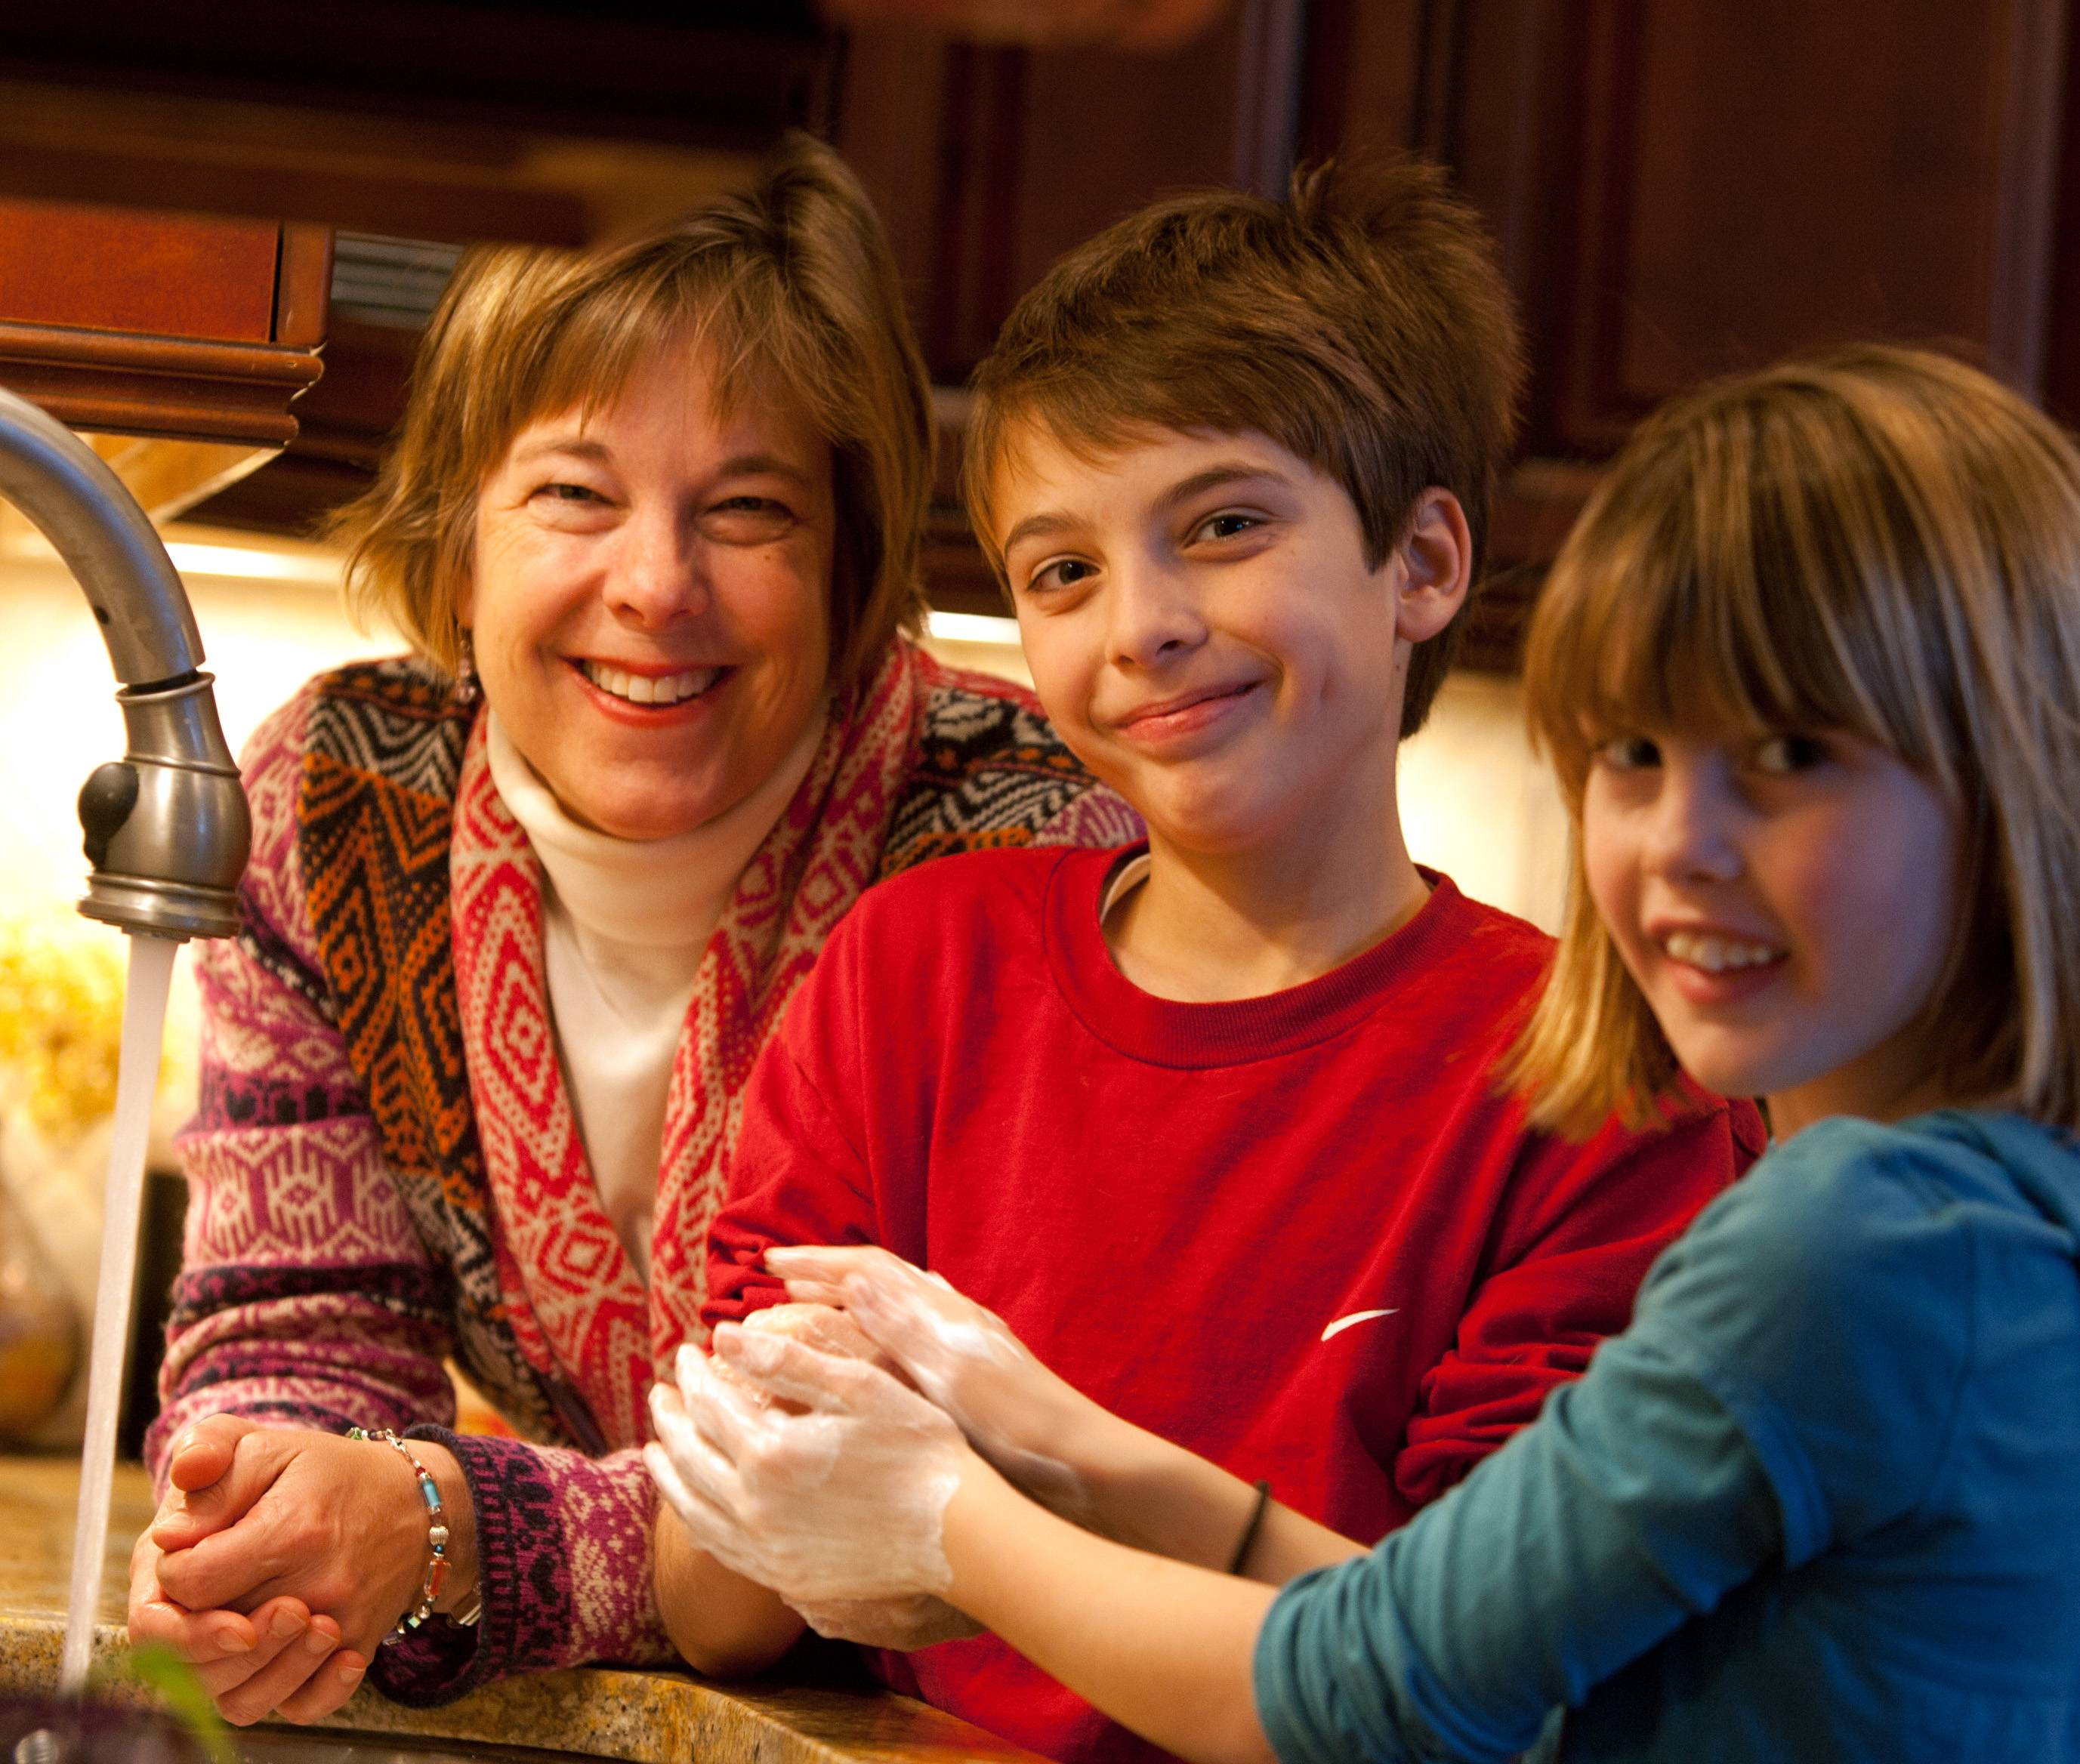 Dr. Karen Judy, a Glen Ellyn pediatrician, encourages germ fighting hygiene with her children Thomas, 11, and Kate, 9.